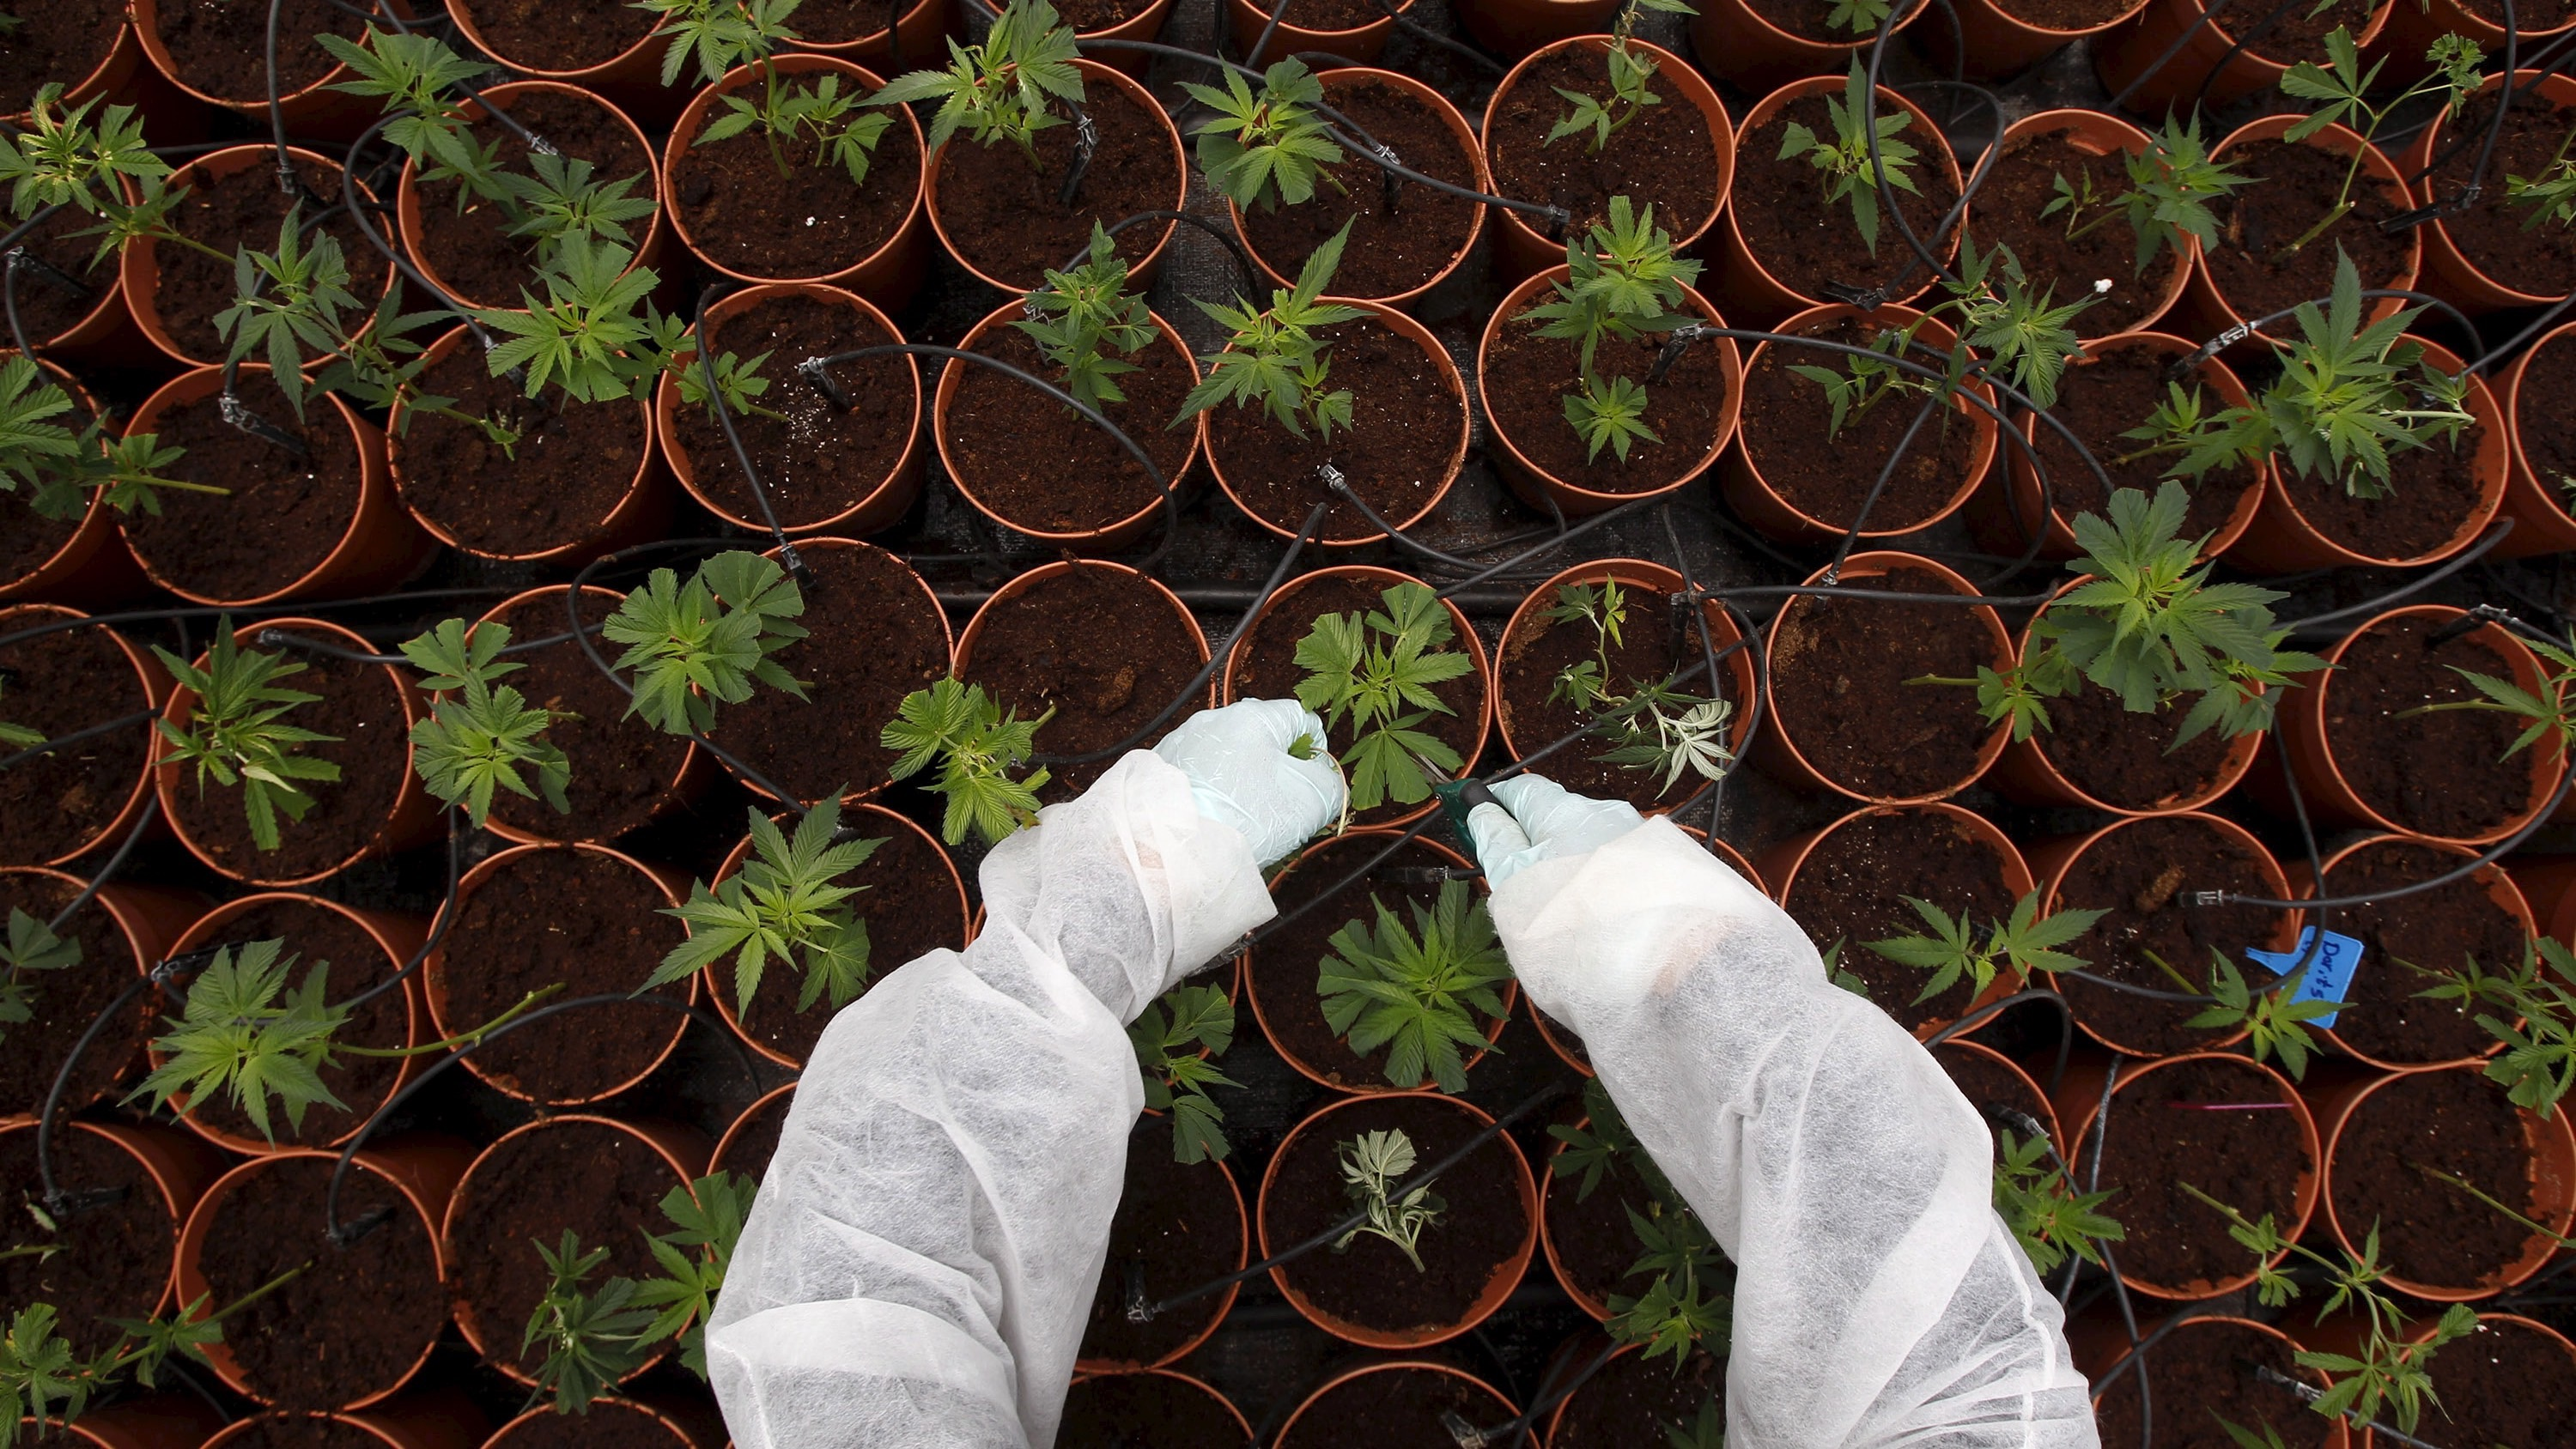 A worker tends to cannabis plants at a plantation near the northern Israeli city of Safed, in this June 11, 2012 file picture.  REUTERS/Baz Ratner/Files       TPX IMAGES OF THE DAY      - RTSCMIM